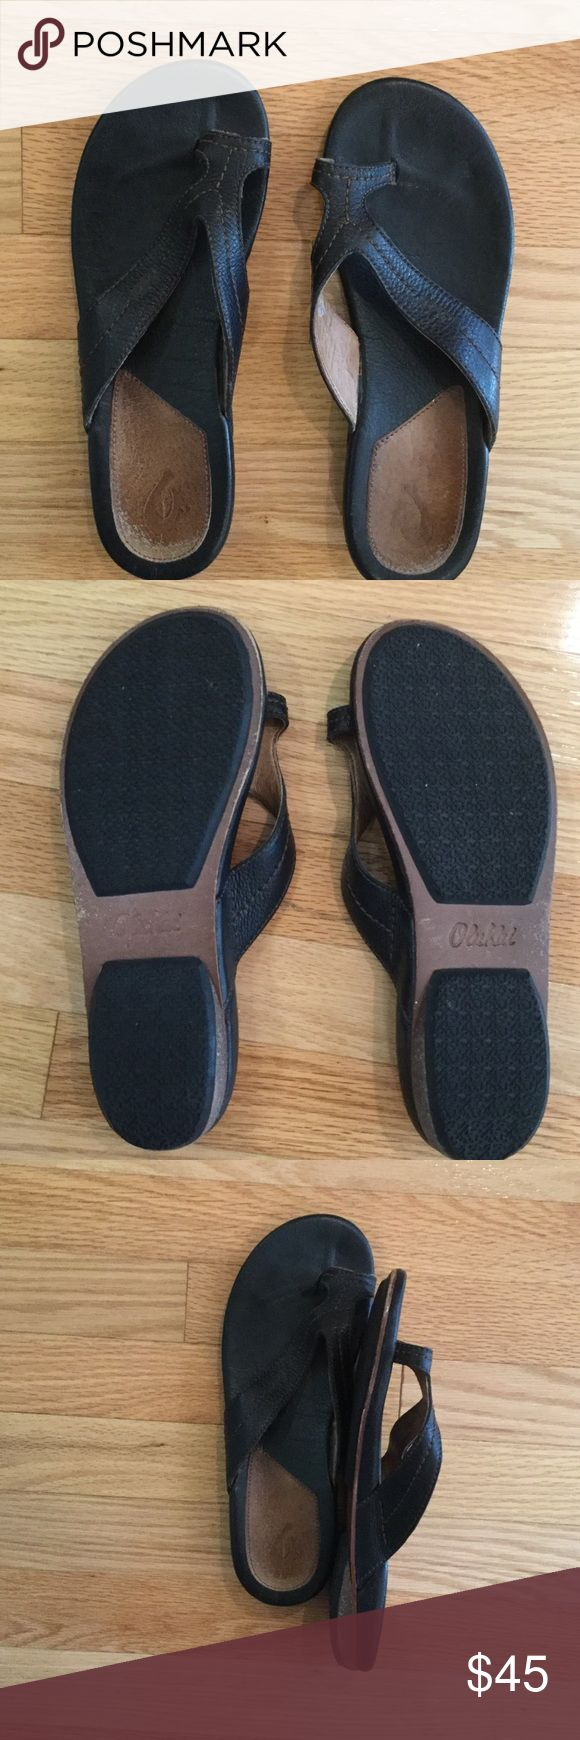 Black leather Olukai sandals with toe loop Sexy sandals, show off your pedicure! Black leather, barely worn. Brown stitching adds interesting detail. OluKai Shoes Sandals